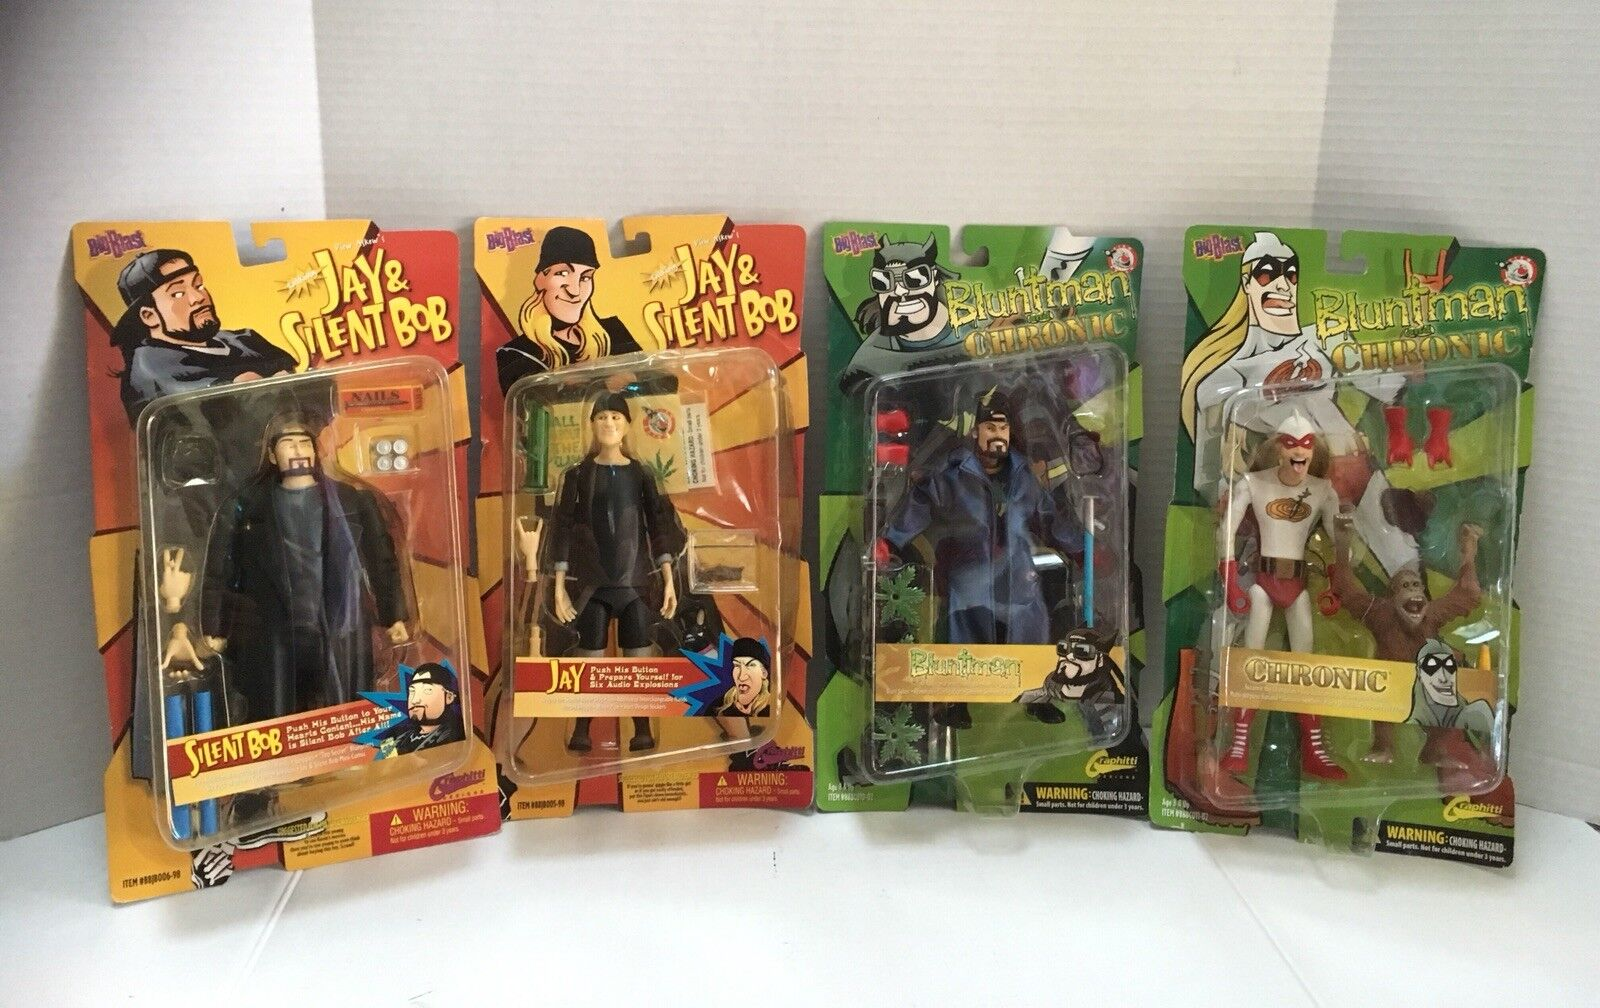 Blauntman And Chronic - Silent Bob and Jay - 8  Action Figures - (2002) NEW